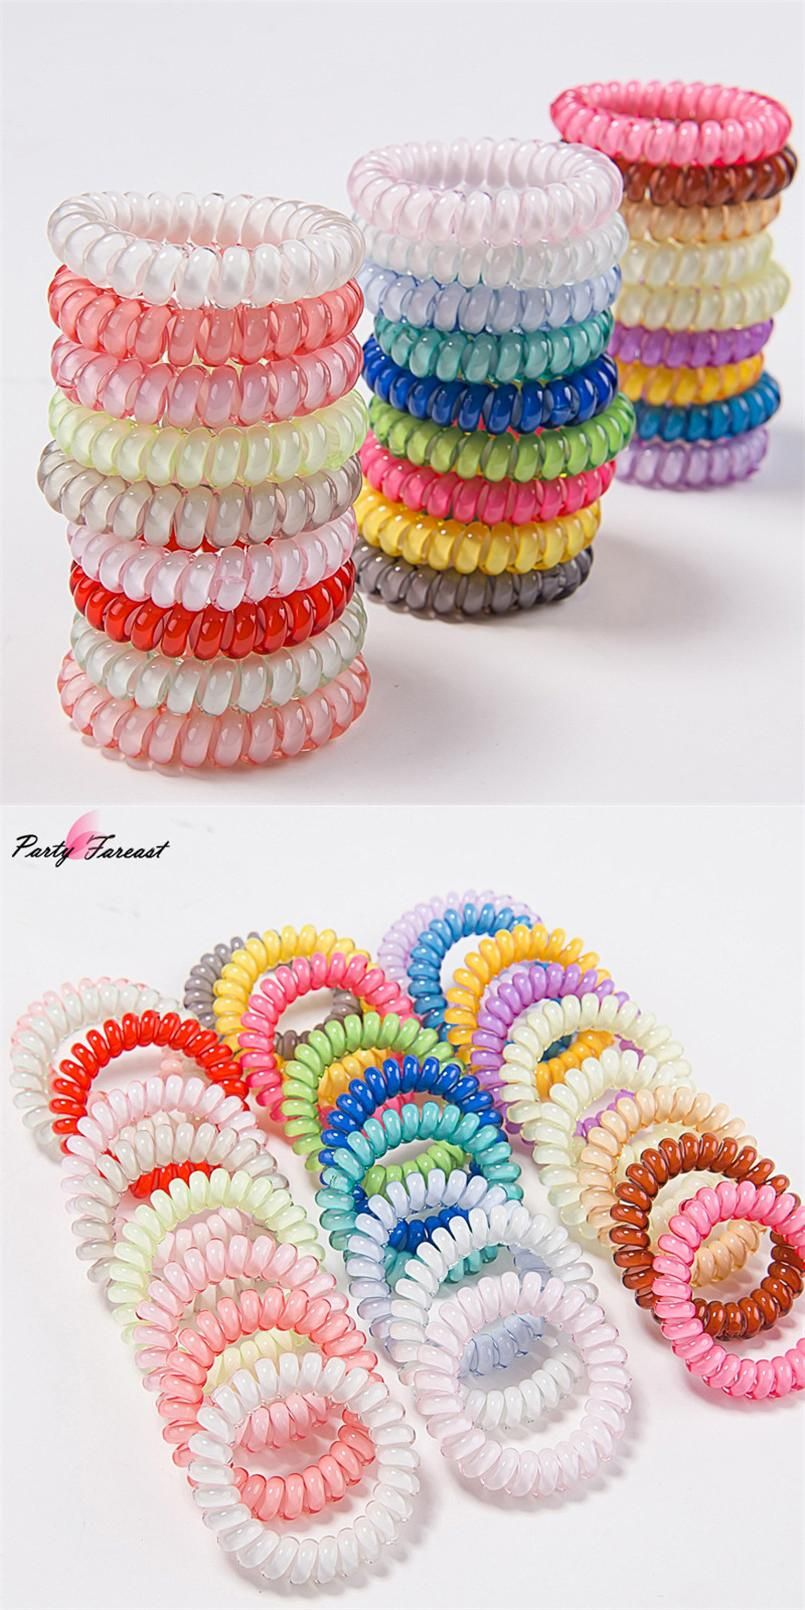 PF Candy Color Hair Bands for Girls Elastic Telephone Wire Scrunchie Hair  Tie Ring Rope Headbands for Women Accessories TS0554 82bc46b33e5